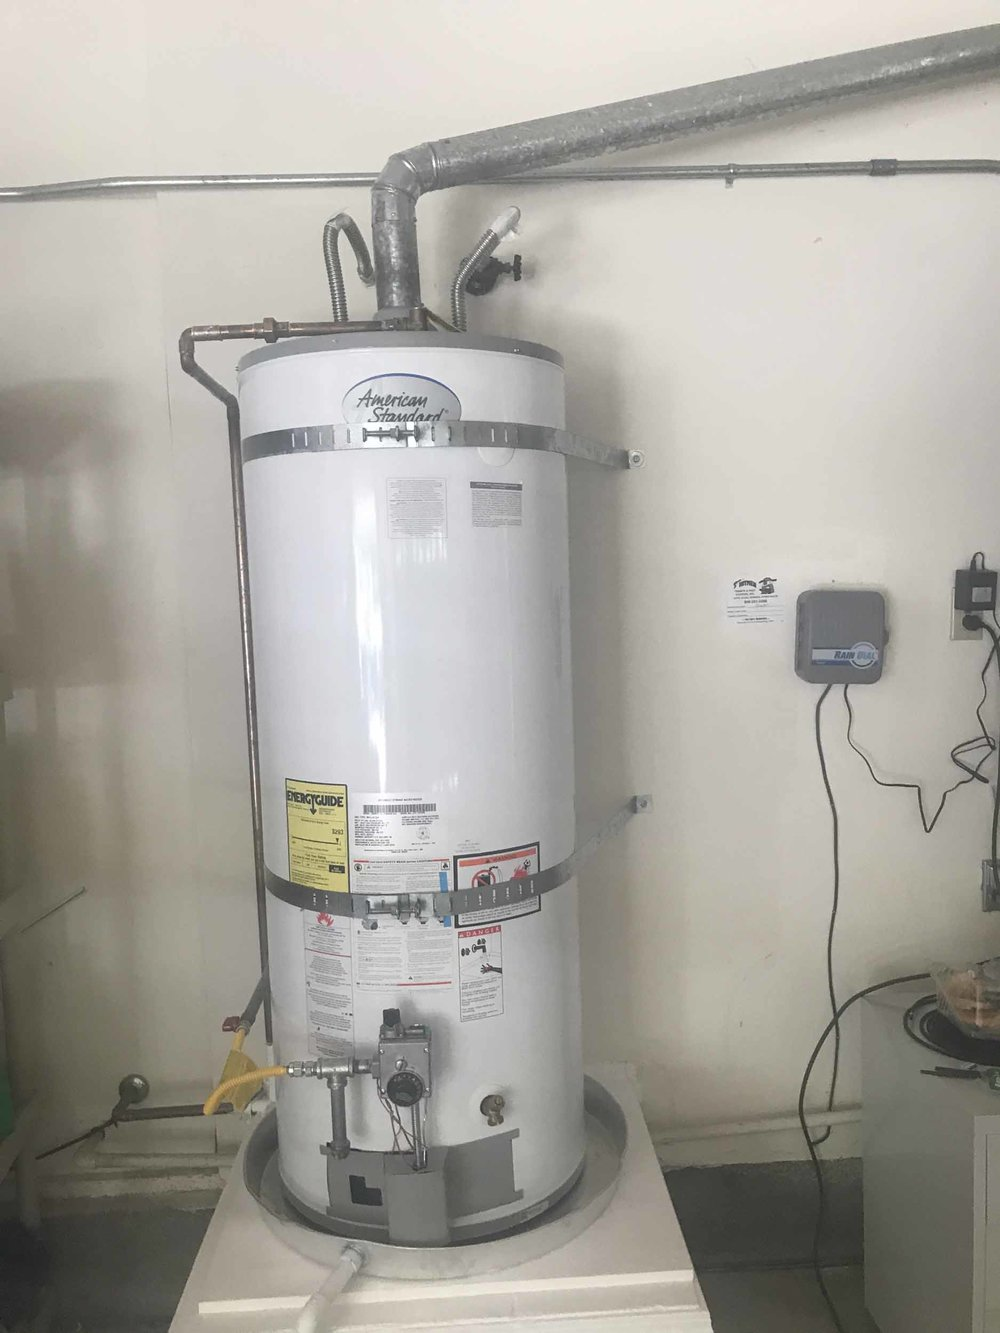 Water Heaters - Get your water heater cleaned and the hot water back!If you need a new water heater, we'll install it and save you time and money.We handle all the top brands!